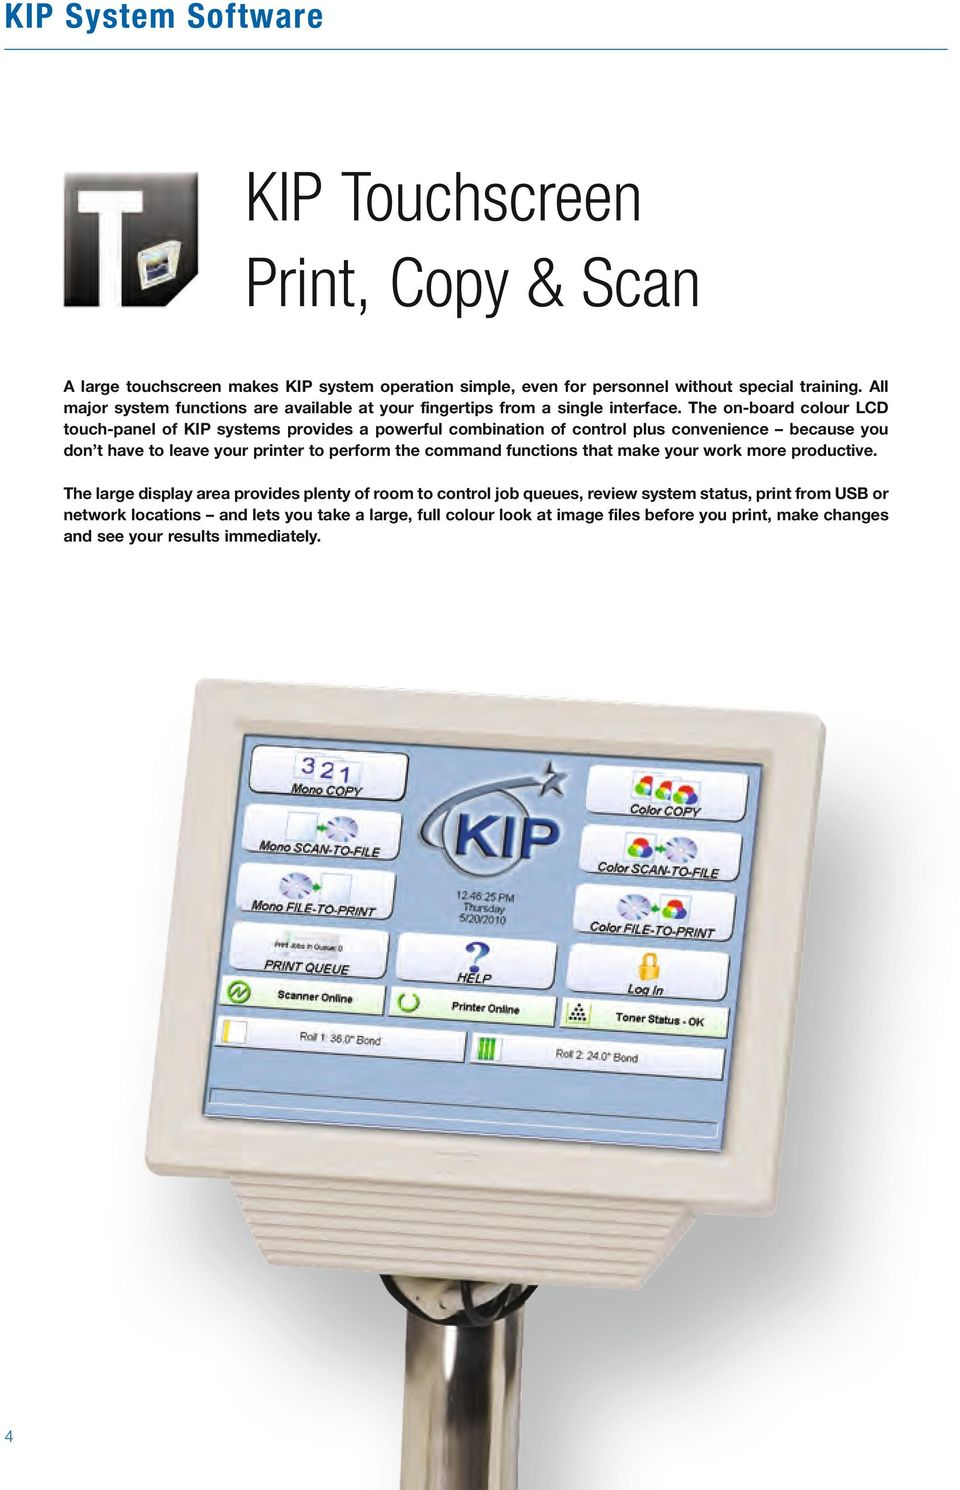 The on-board colour LCD touch-panel of KIP systems provides a powerful combination of control plus convenience because you don t have to leave your printer to perform the command